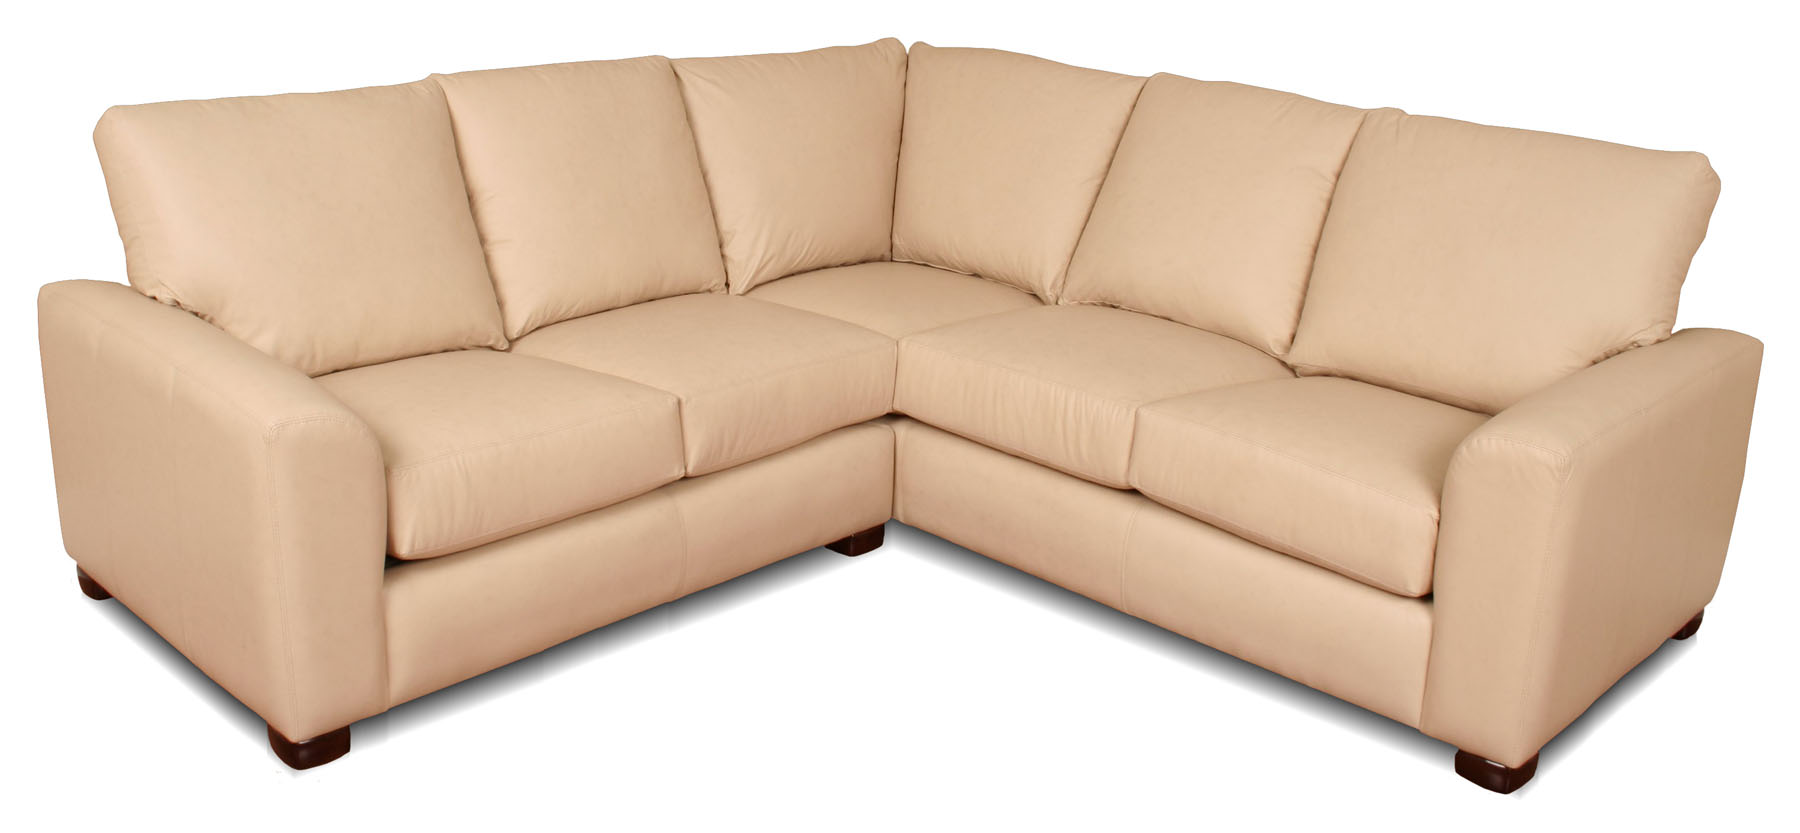 Dearborn U2013 Leather Sectional